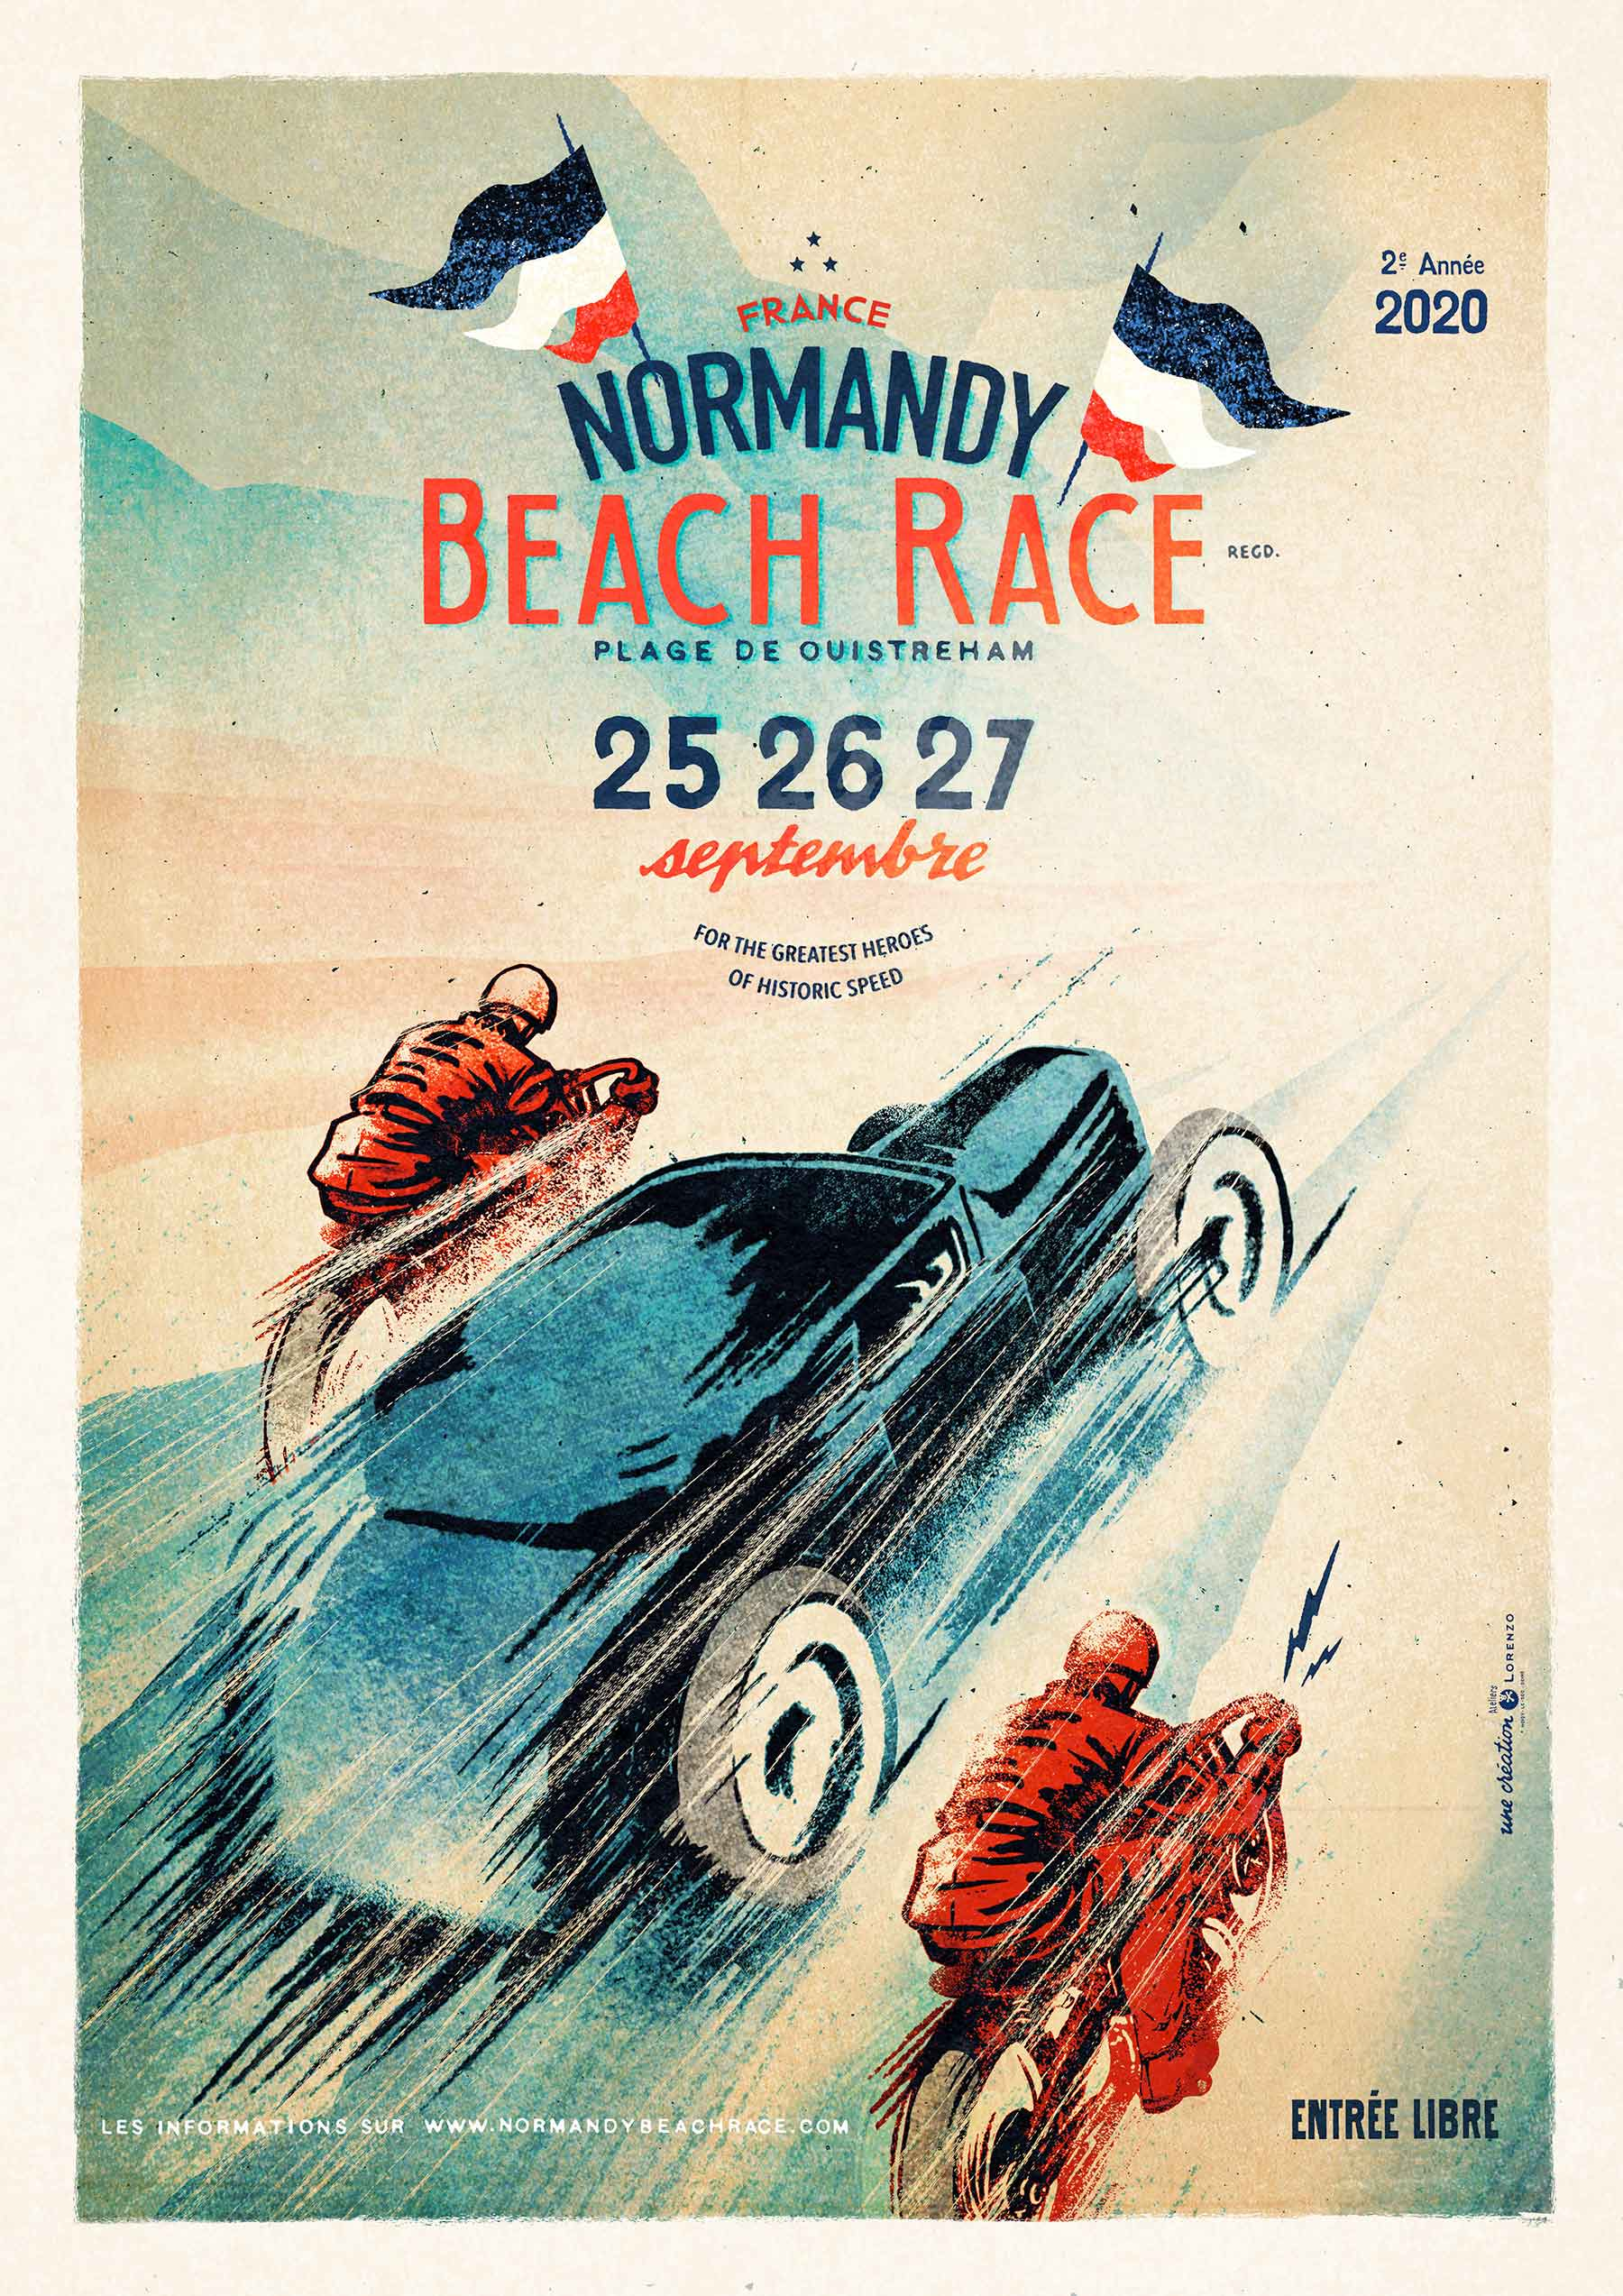 normandy_beach_race_affiche_2020_large.jpg